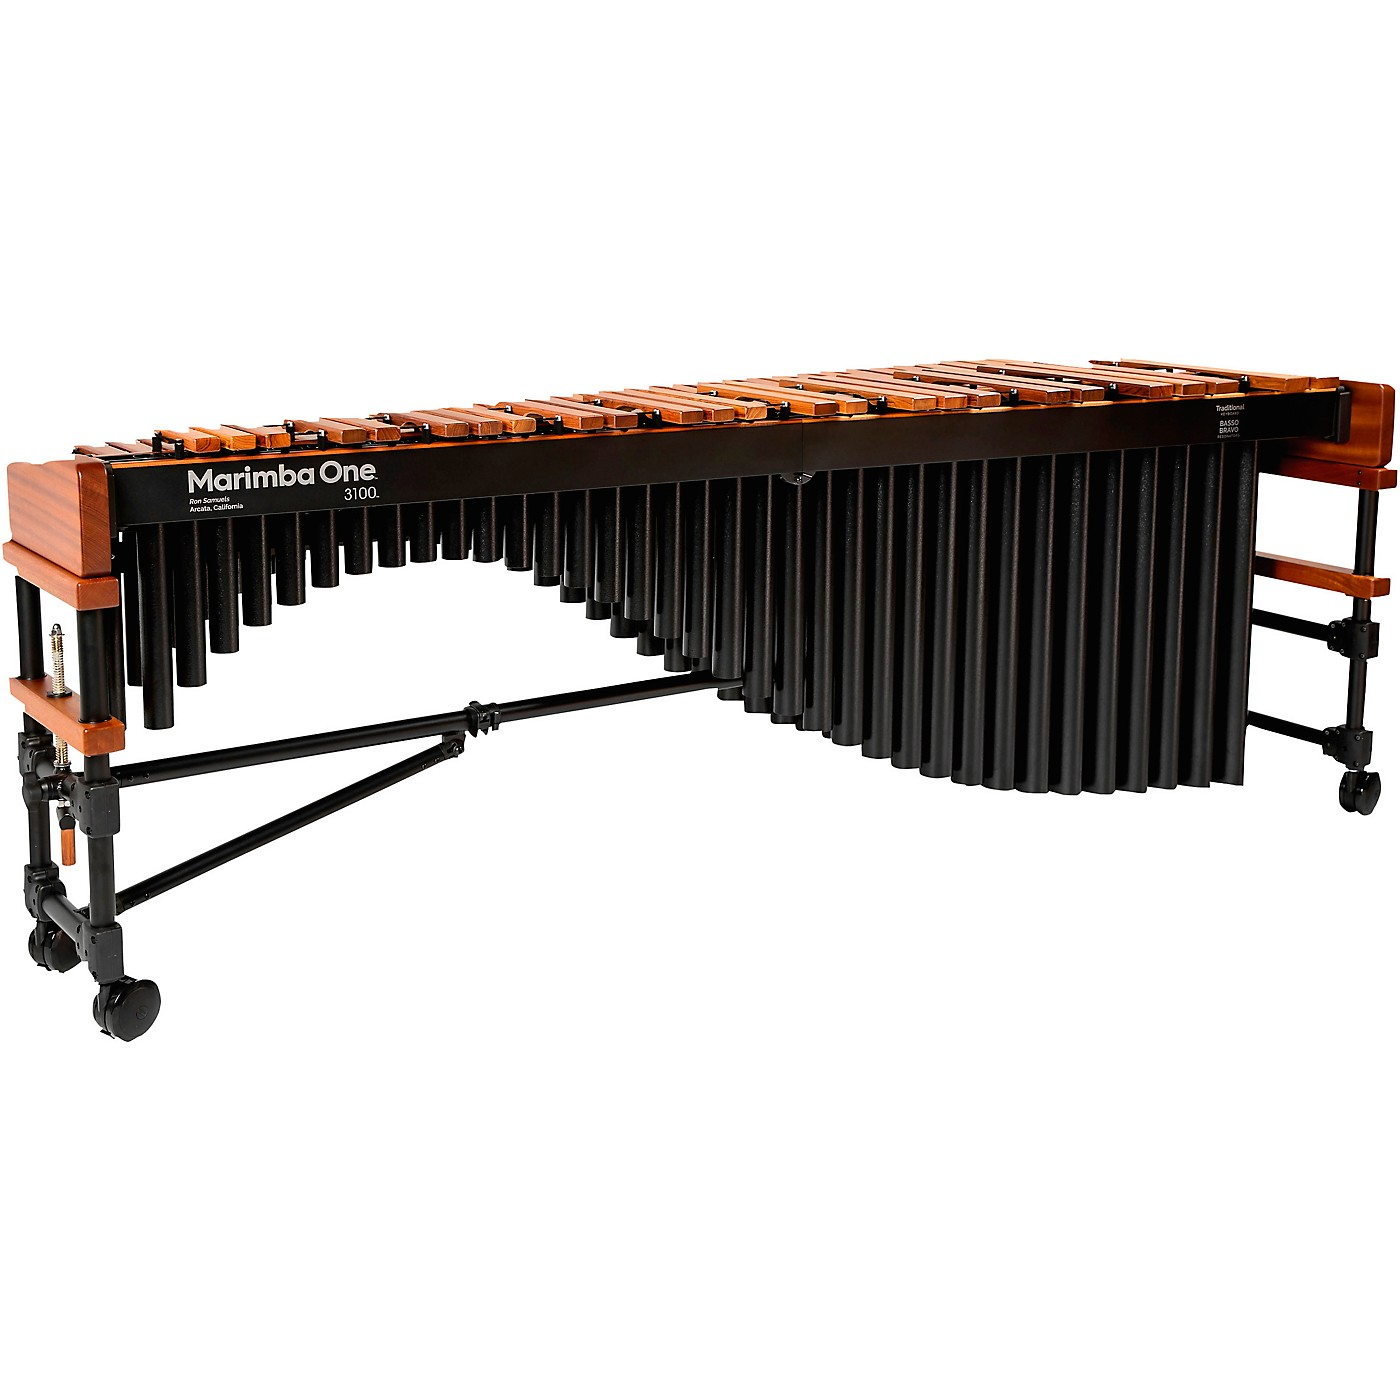 Marimba One 3100 #9304 A442 Marimba with Traditional Keyboard and Basso Bravo Resonators thumbnail